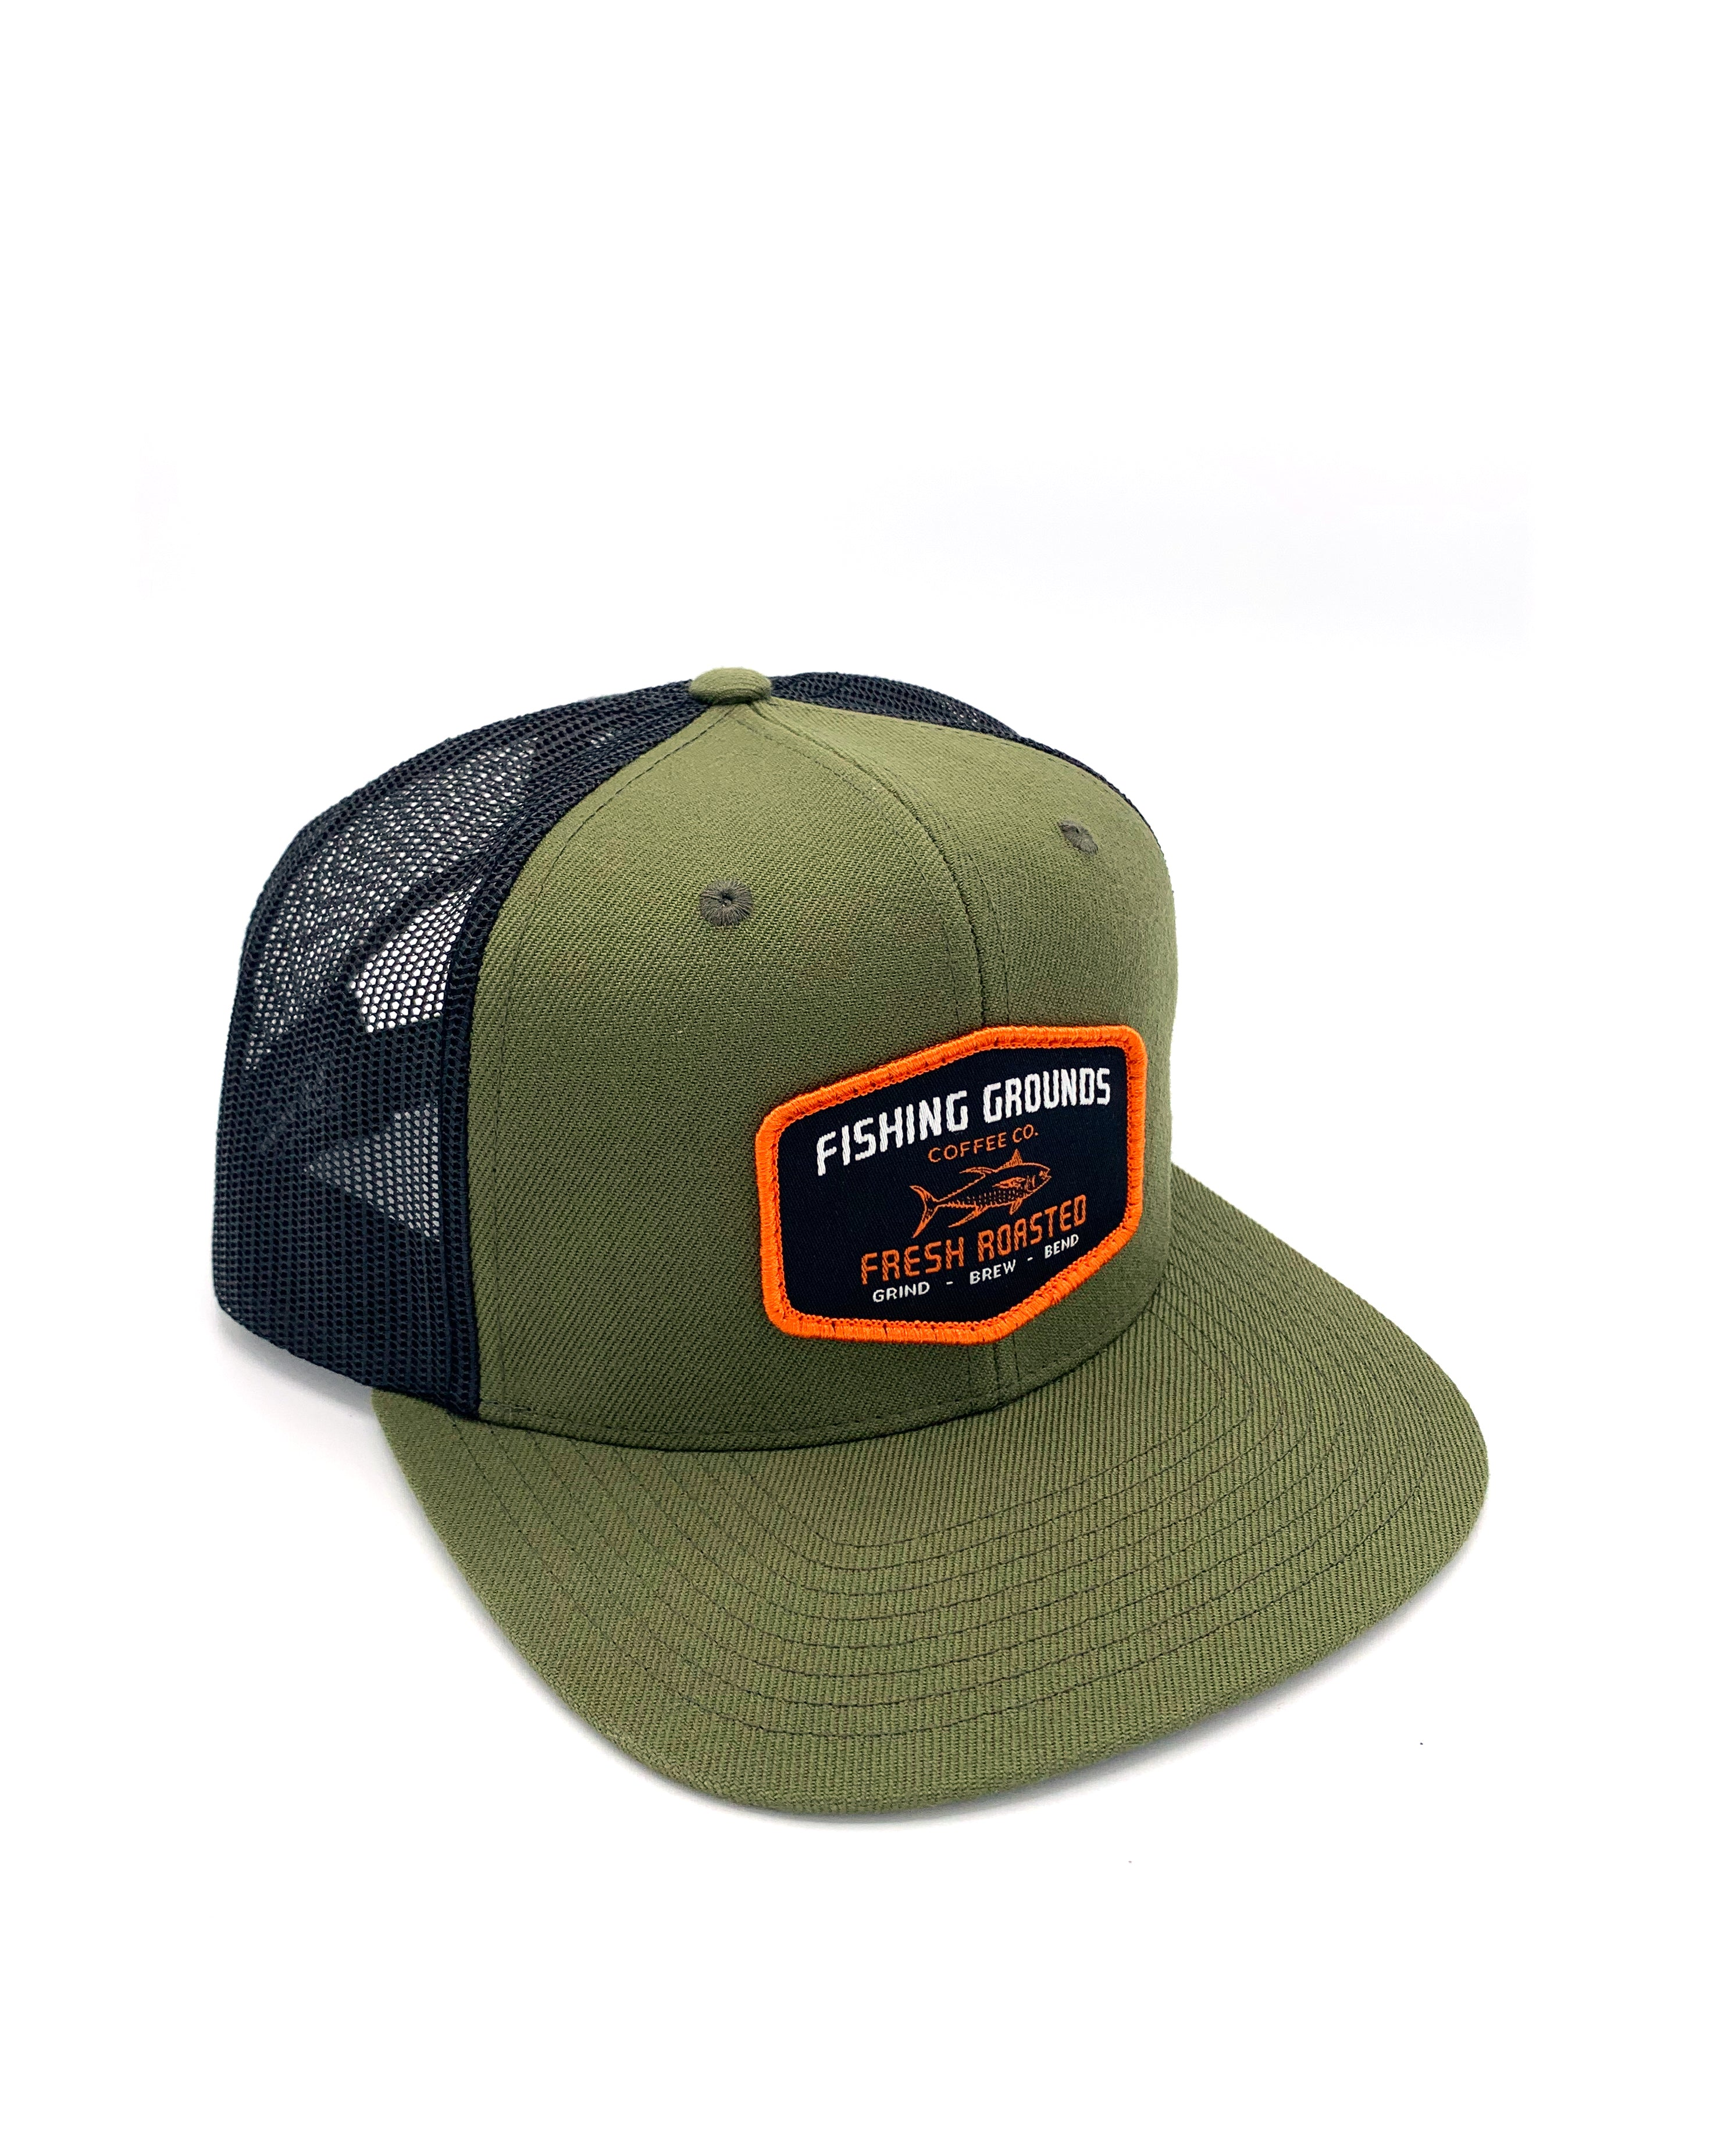 FG Patch Snap BackTrucker Hat with Flat Bill - Green/Black - Fishing Grounds Coffee Company